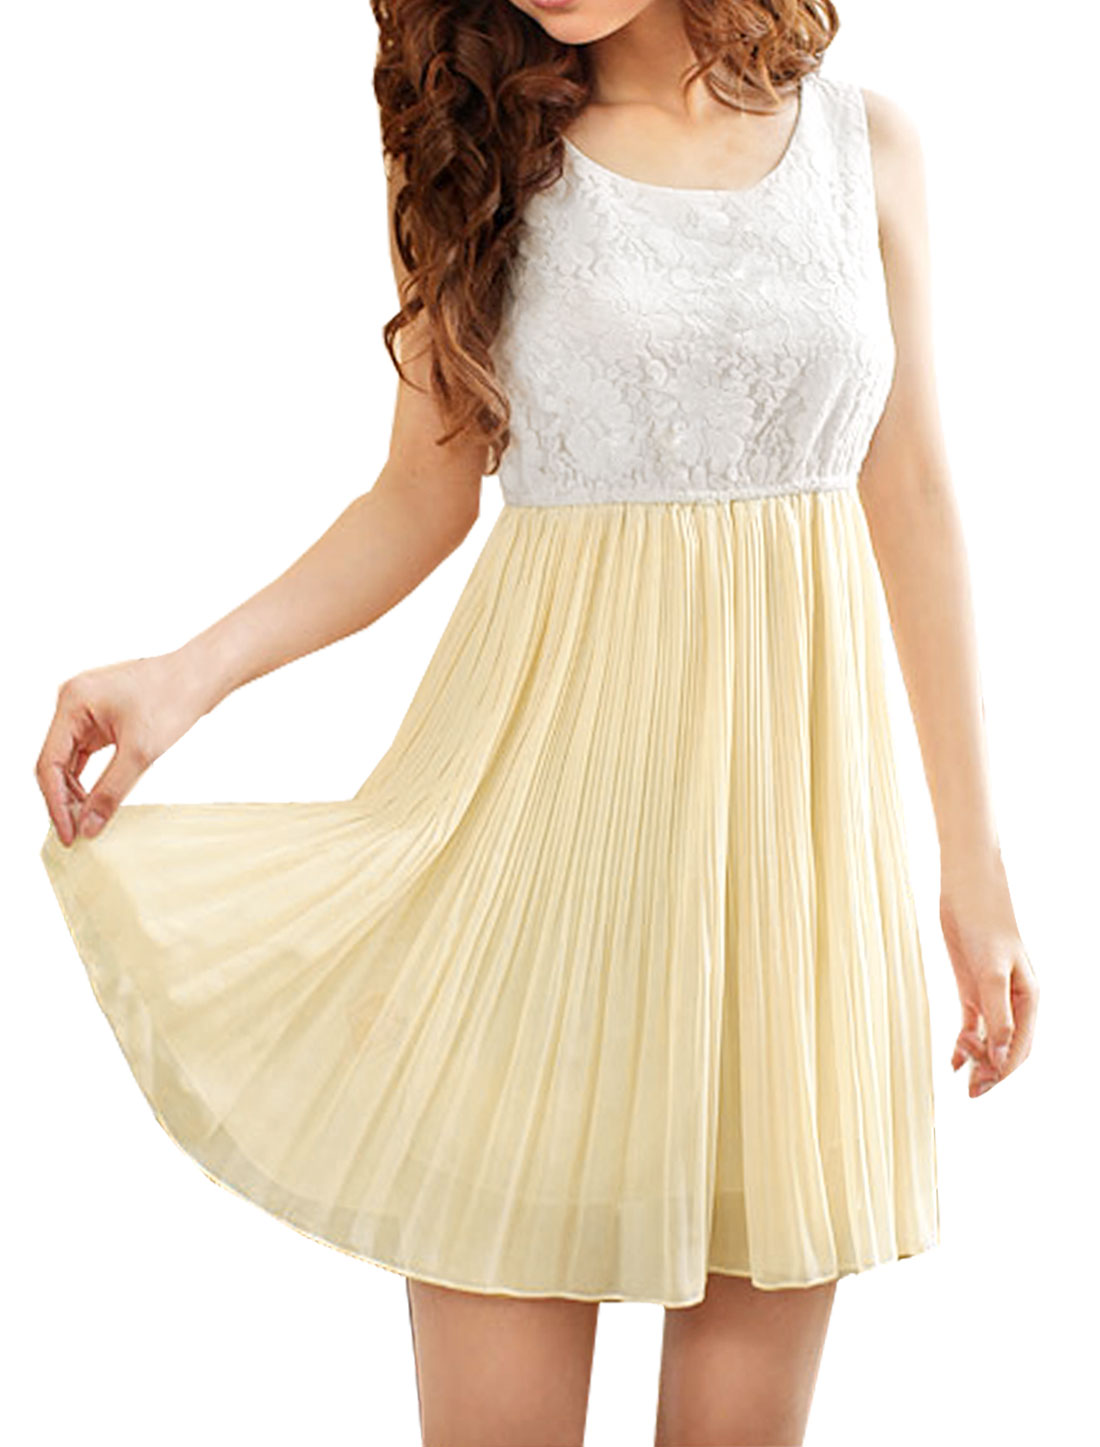 Scoop Neck Elastic Waist Beige White Dress for Lady L